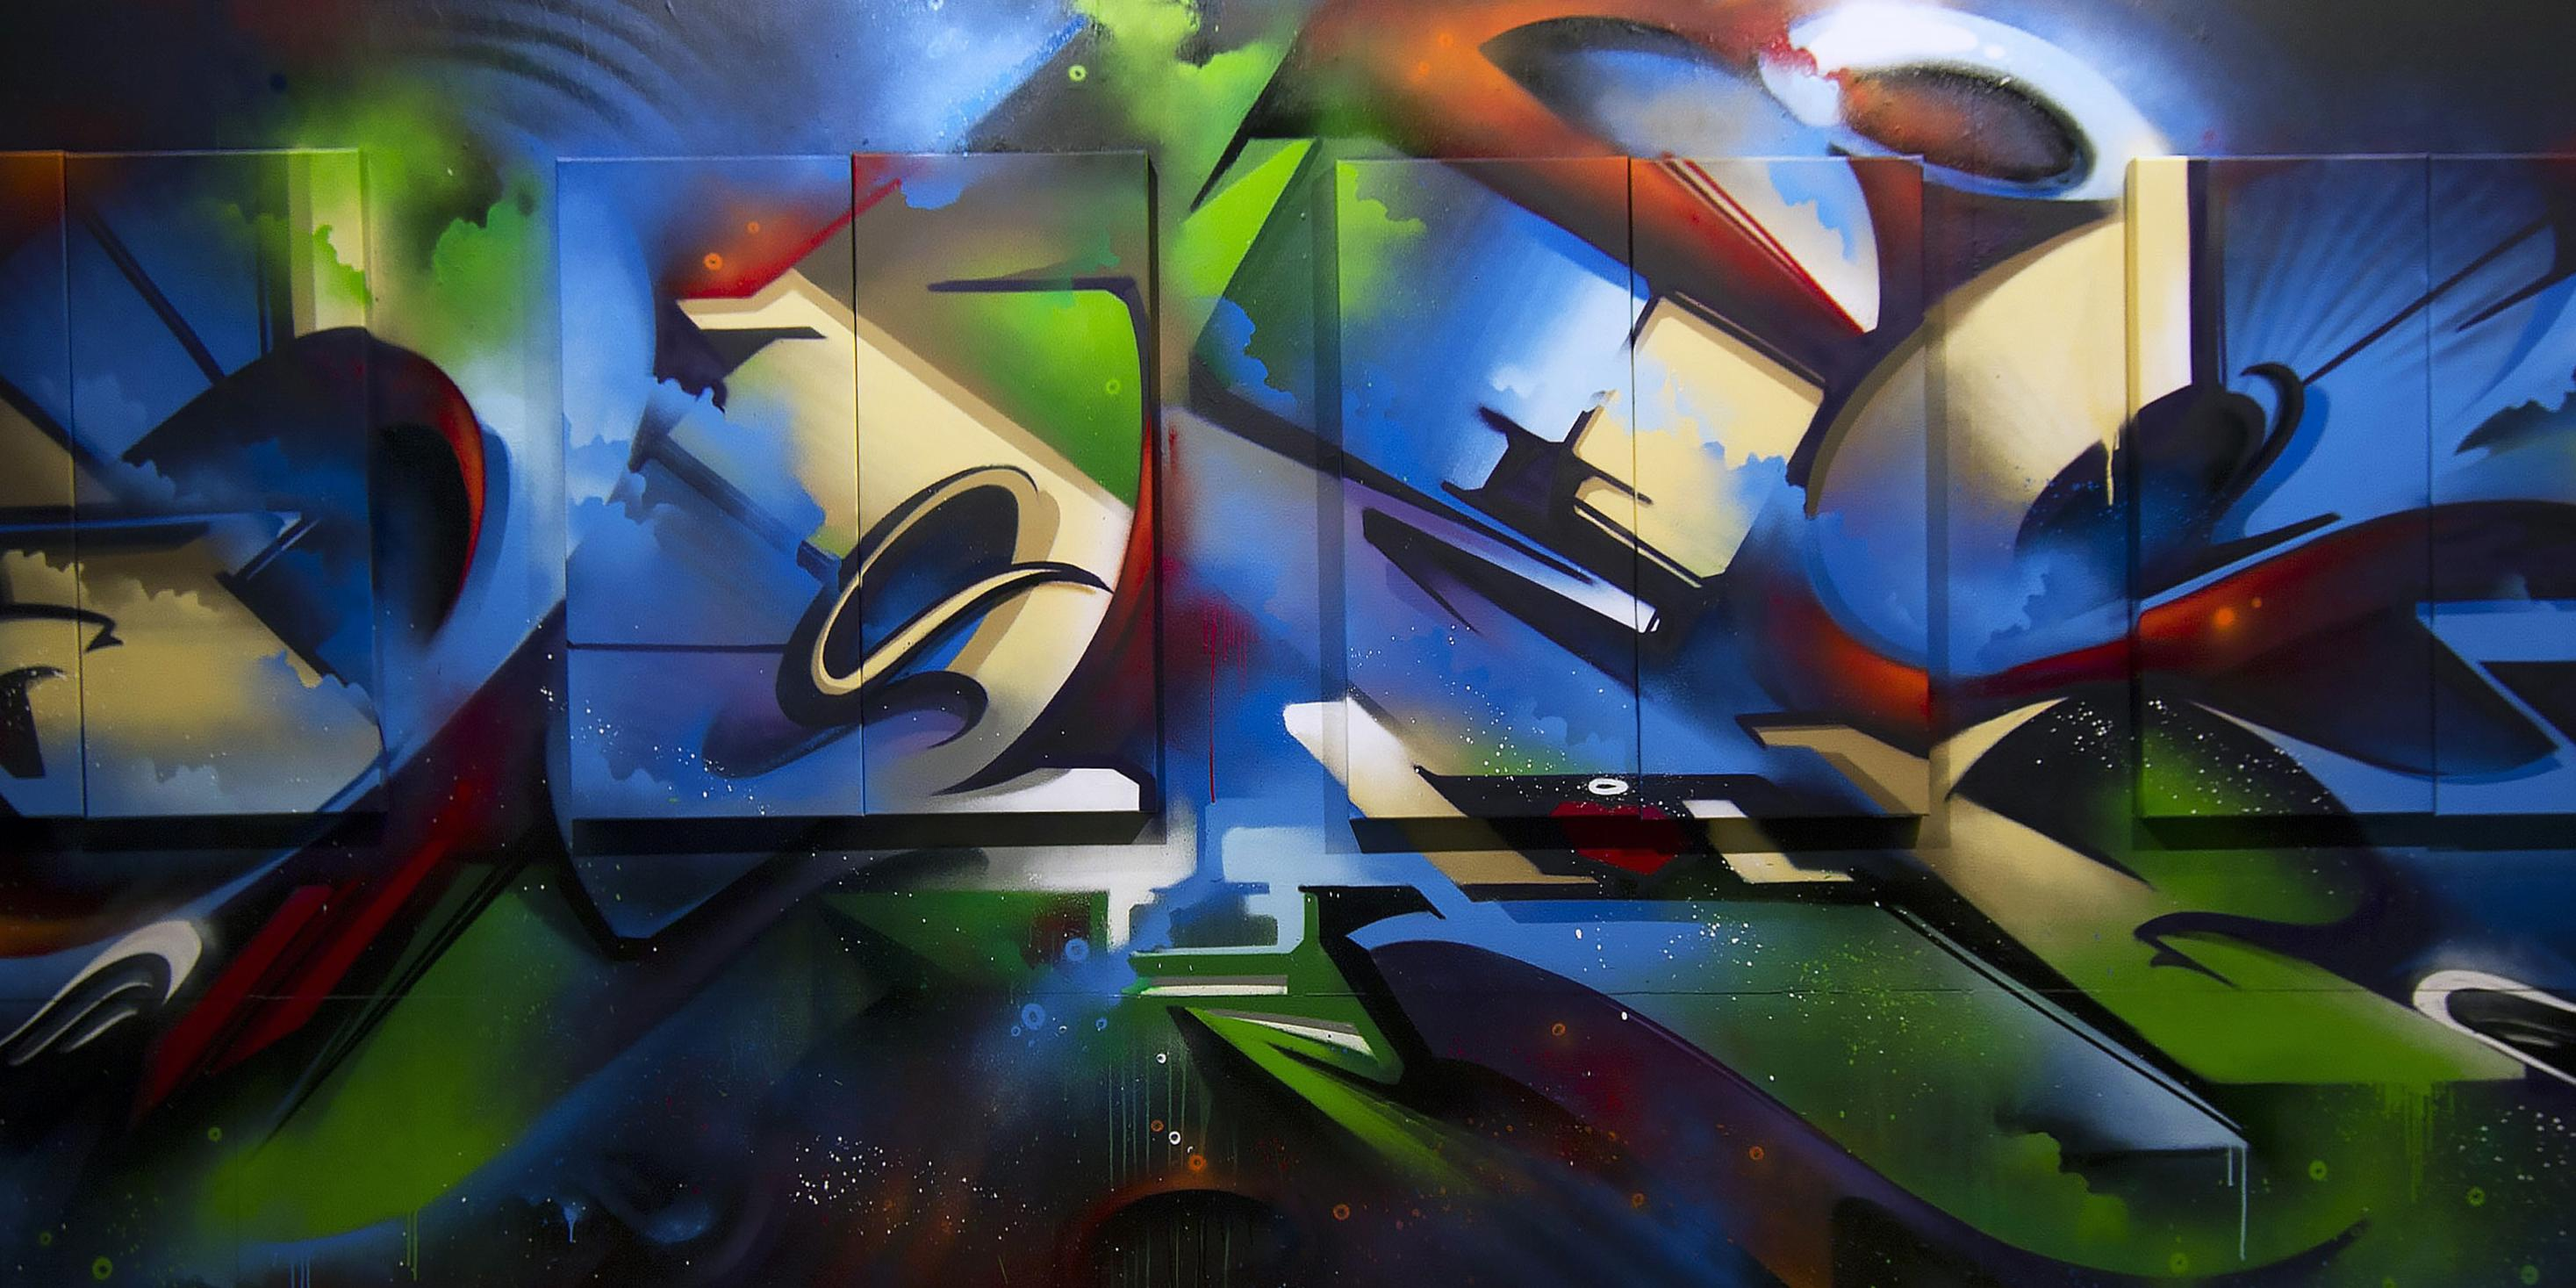 A work by Does - Sydney australia detail canvas endless perspectives